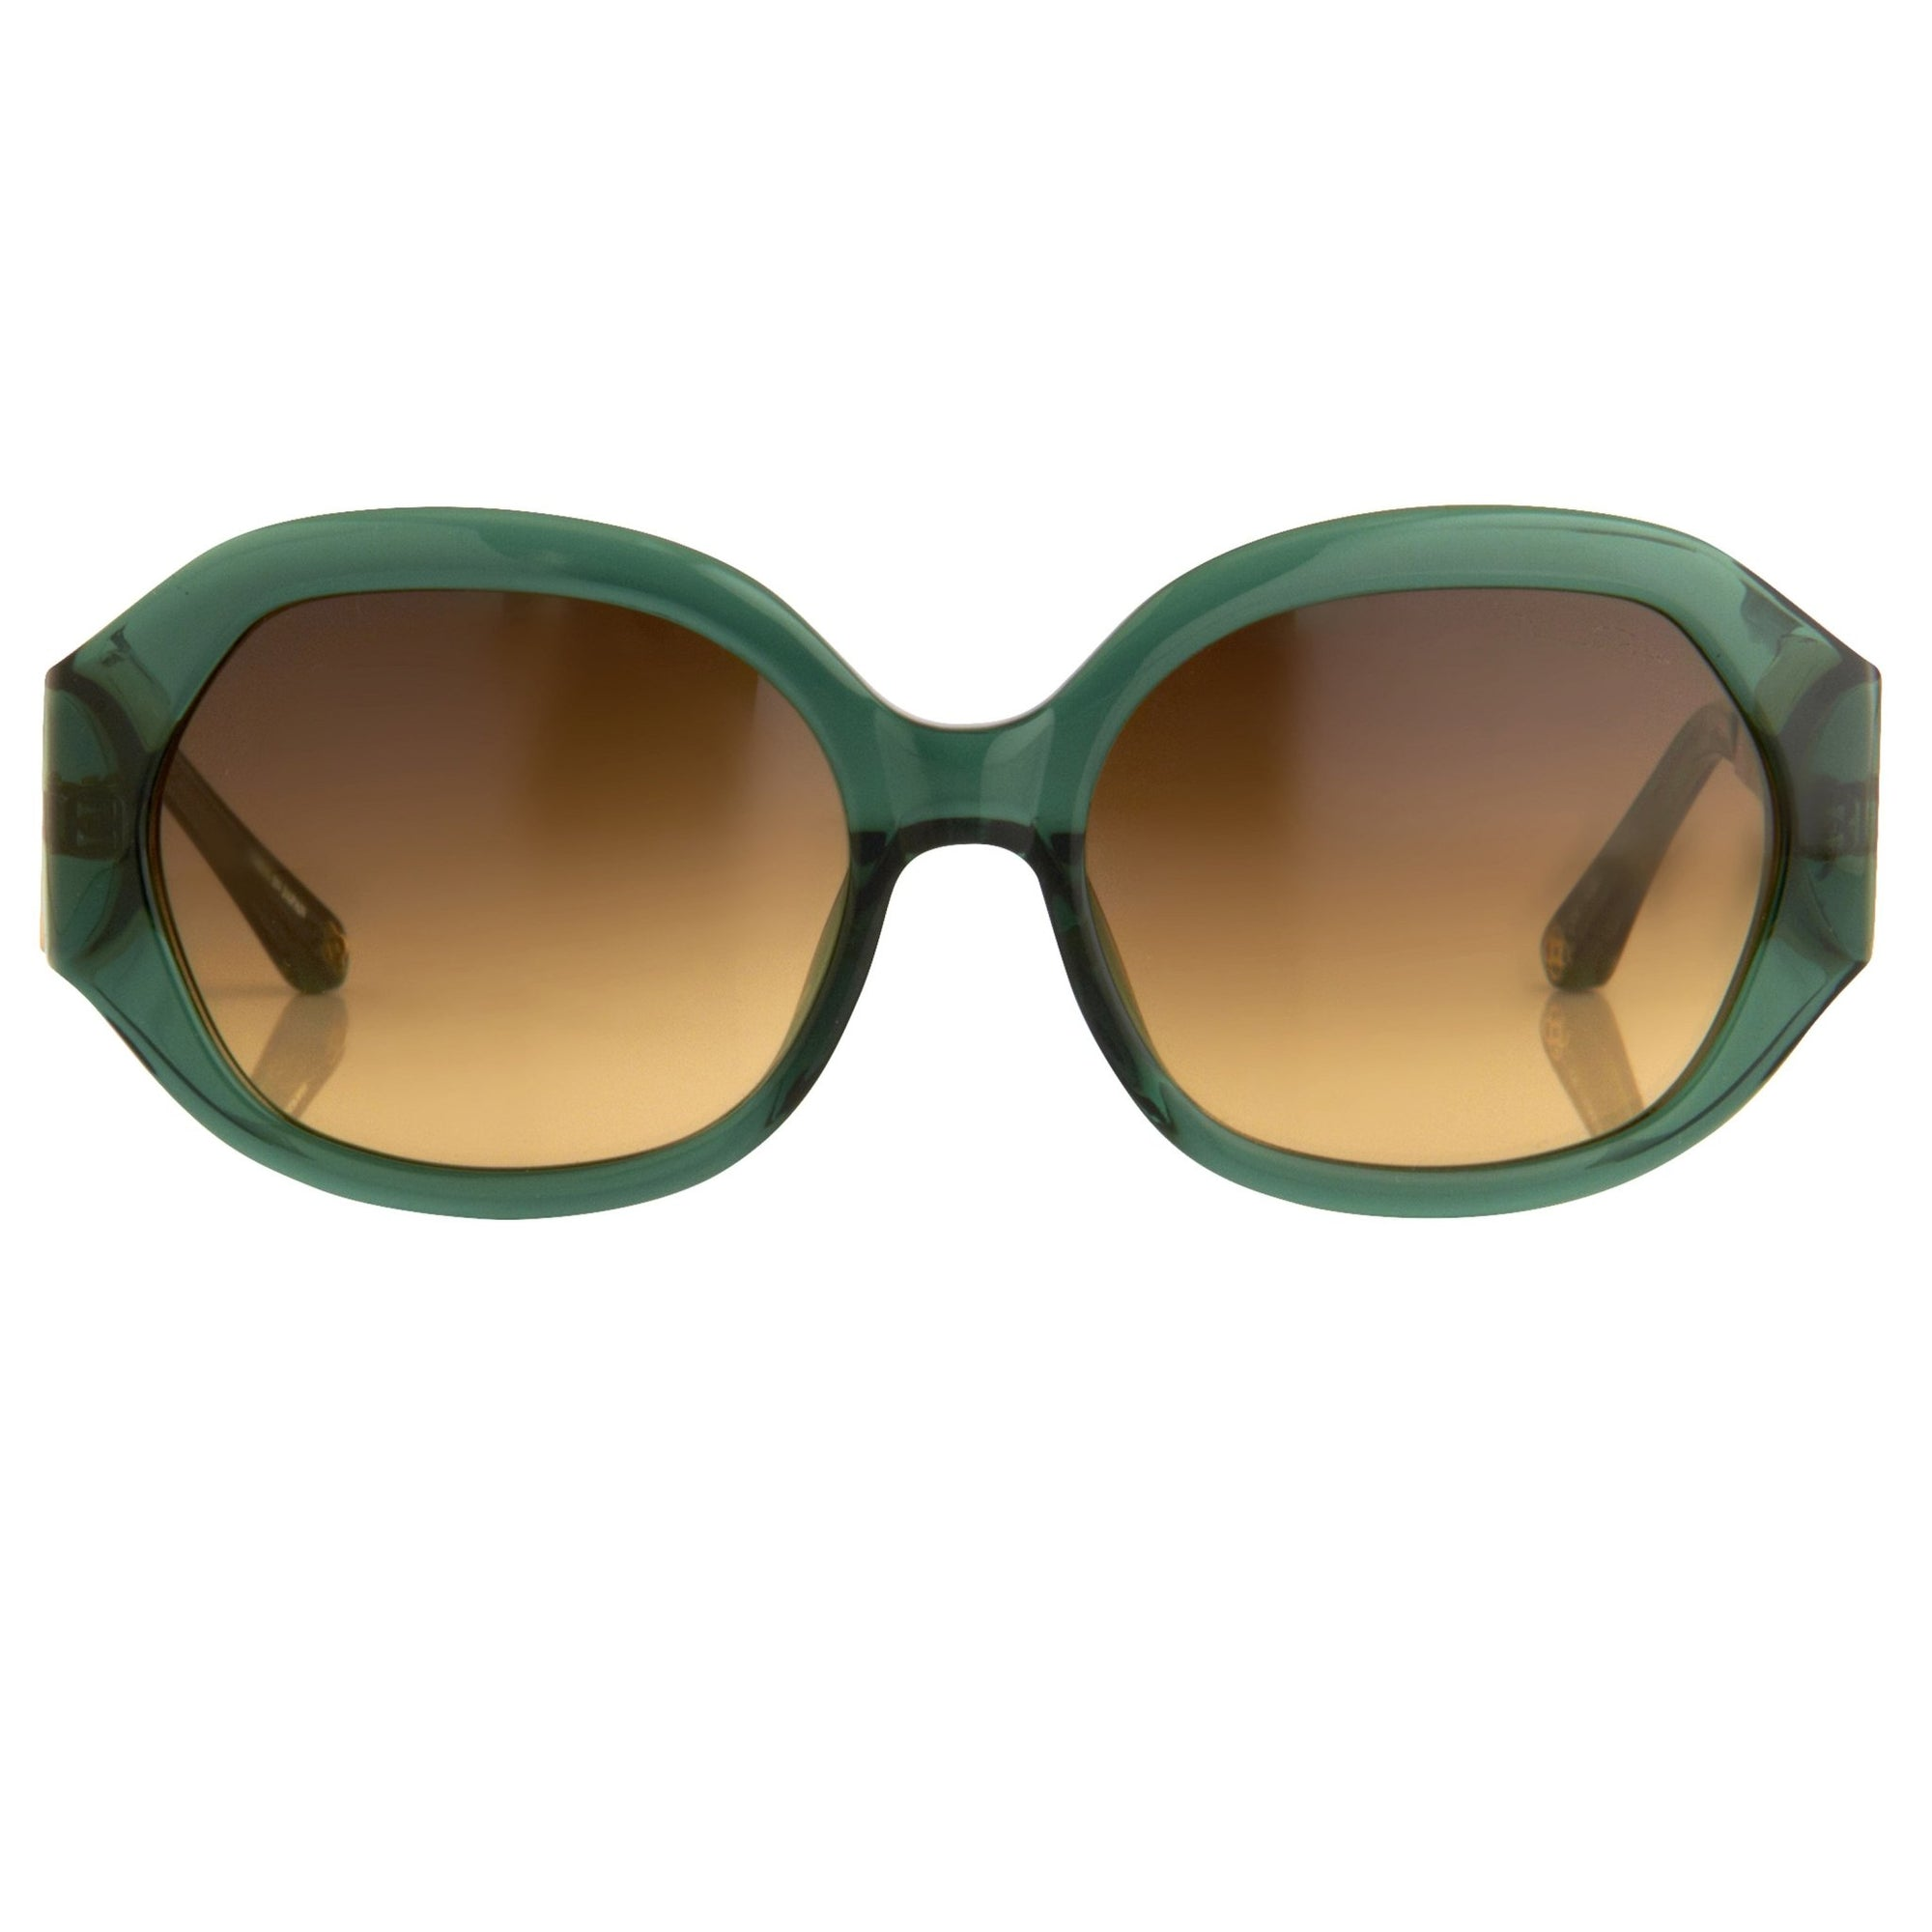 Oscar De La Renta Sunglasses Jackie O Forest Green and Amber Lenses - ODLR34C4SUN - Watches & Crystals